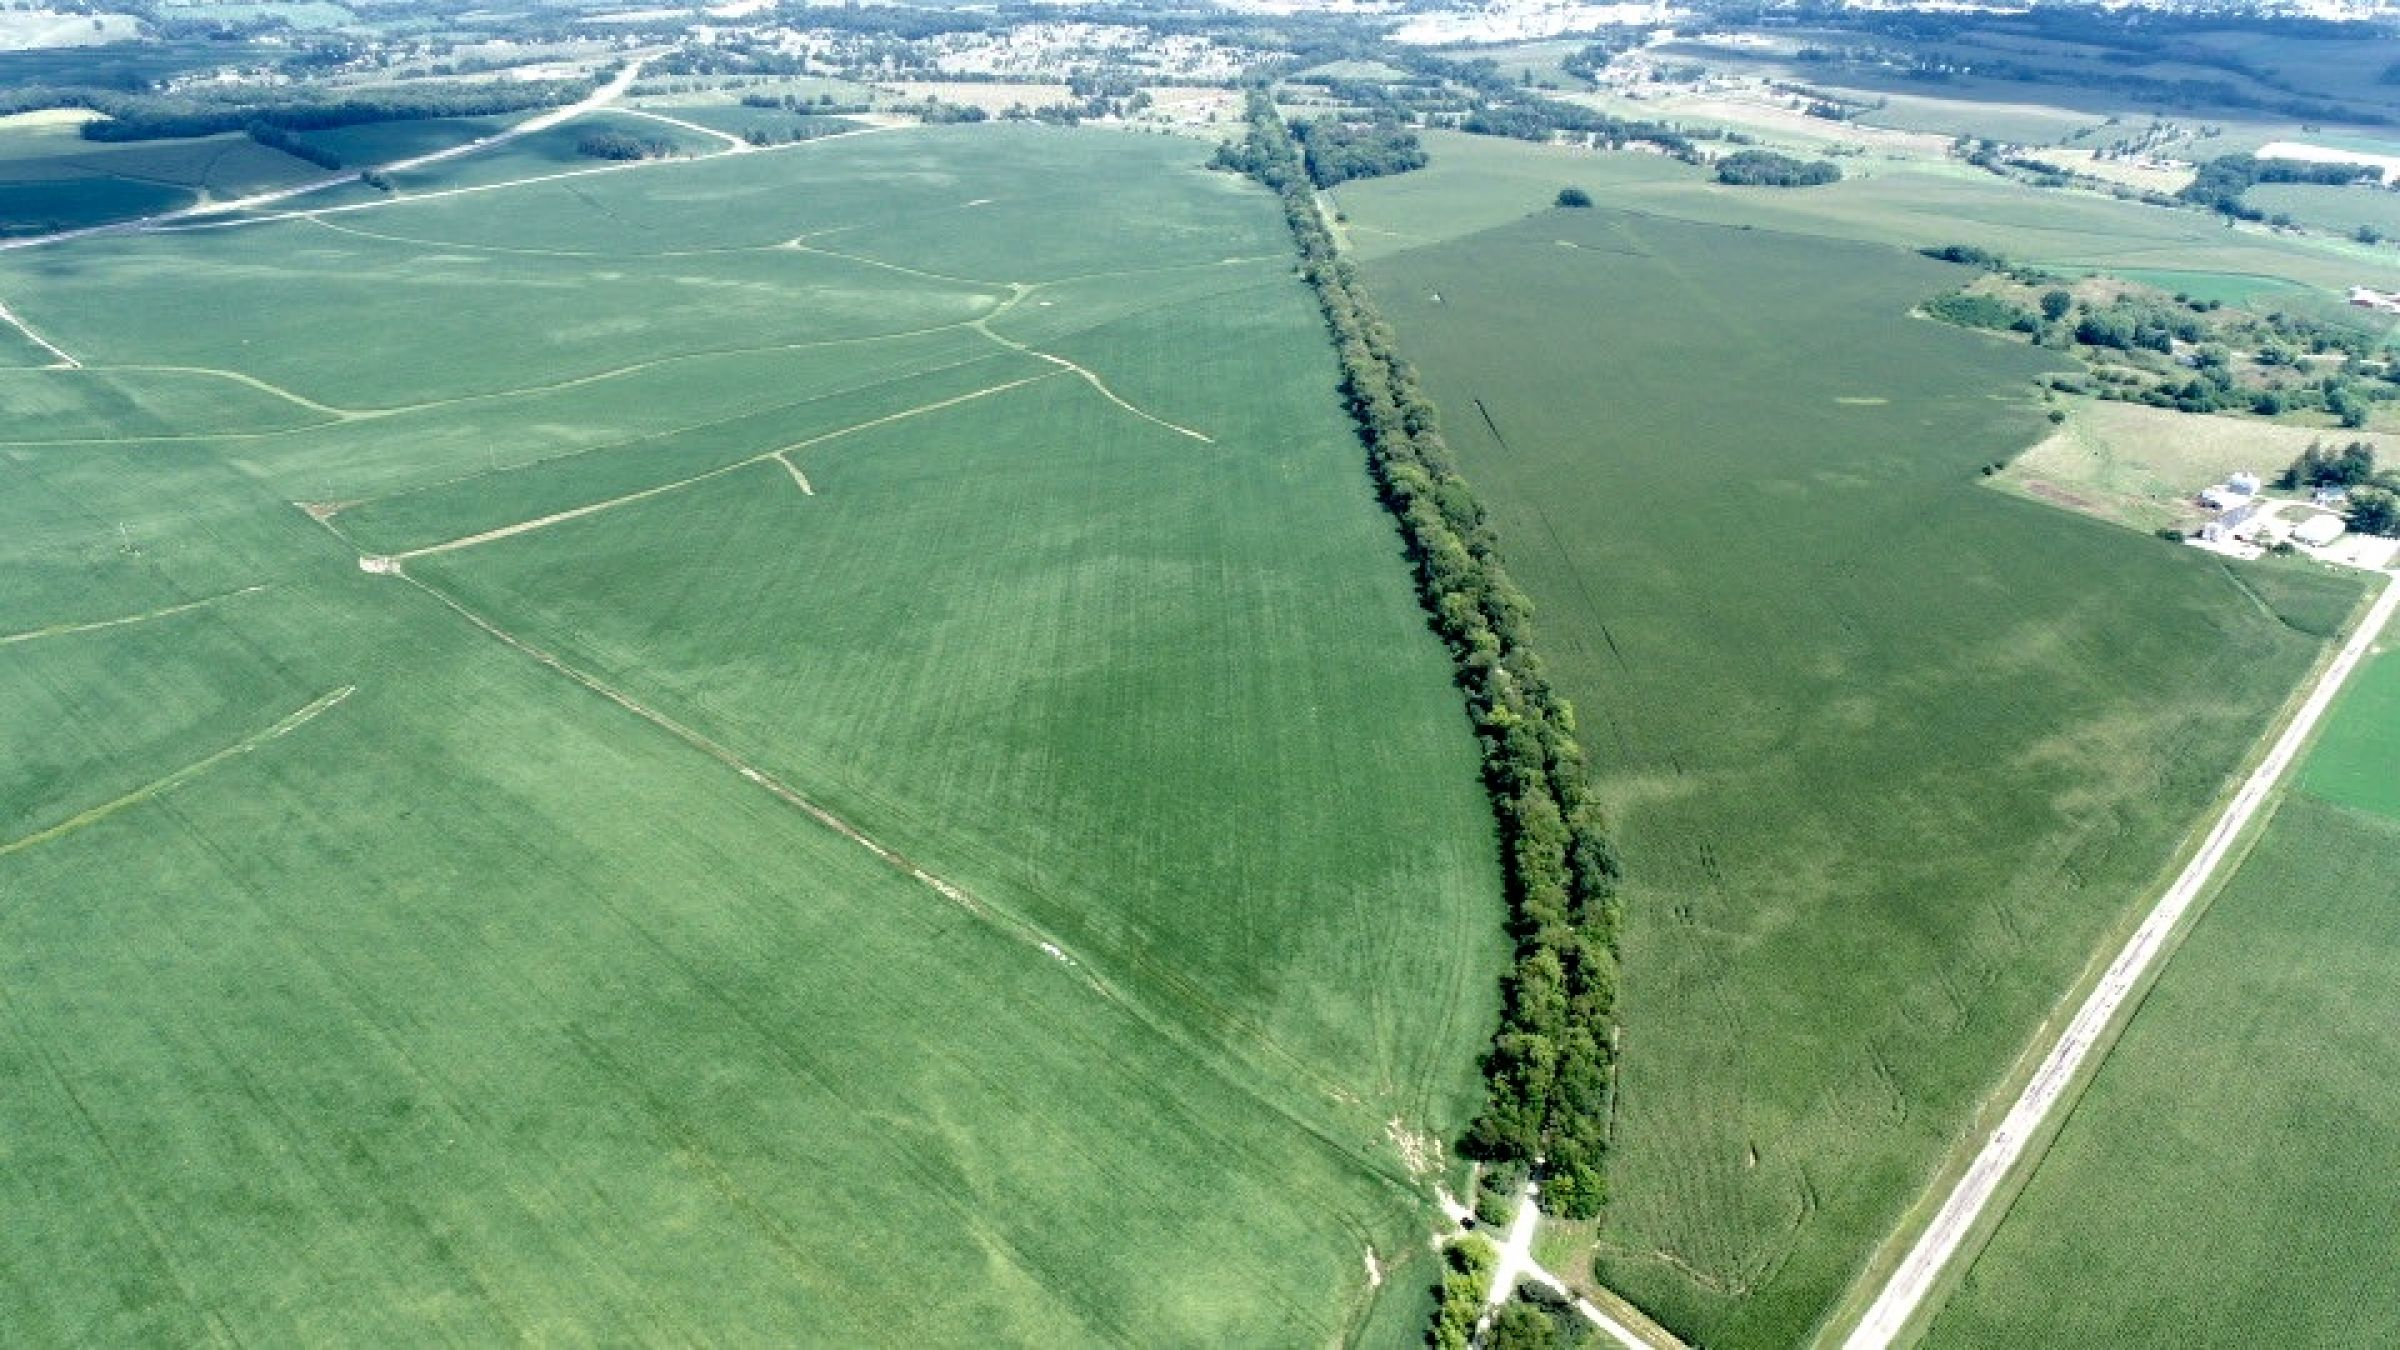 land-green-county-wisconsin-80-acres-listing-number-15692-11-2021-08-19-205615.jpg